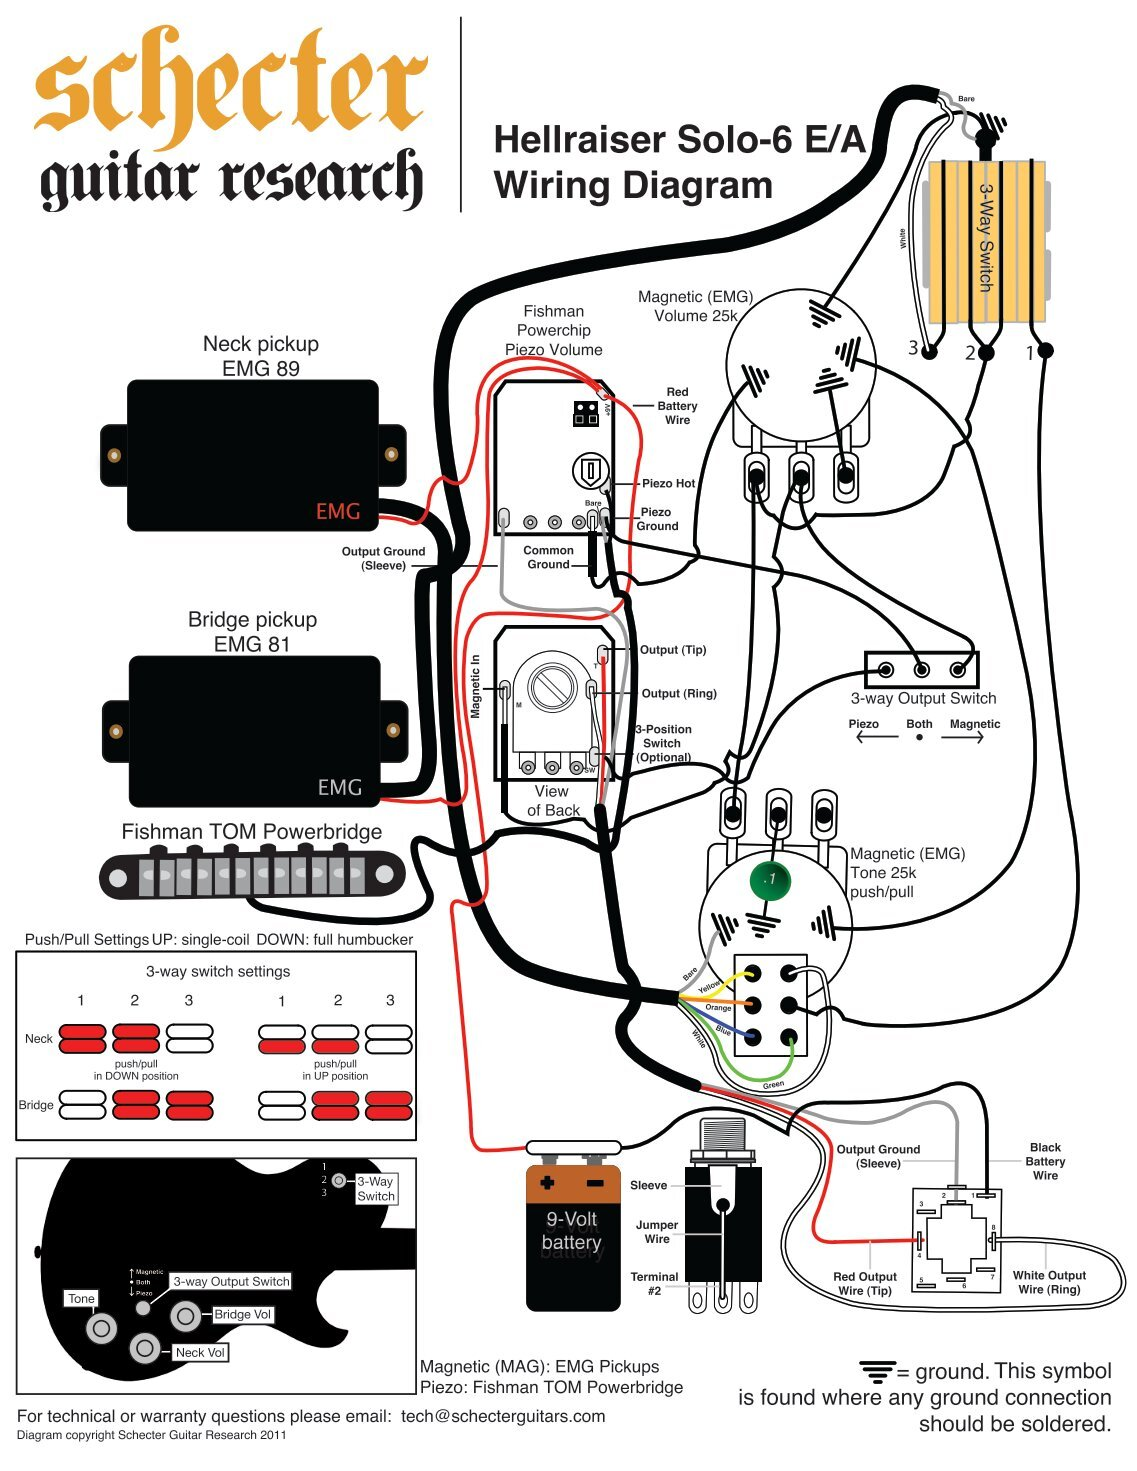 Boss plow rt2 wiring wiring 1957 bel air wiring harness Western Cable Plow Wiring Diagram Meyers Snow Plow Wiring Harness Boss V-Plow Wiring Harness Diagram on boss plow rt2 wiring diagram